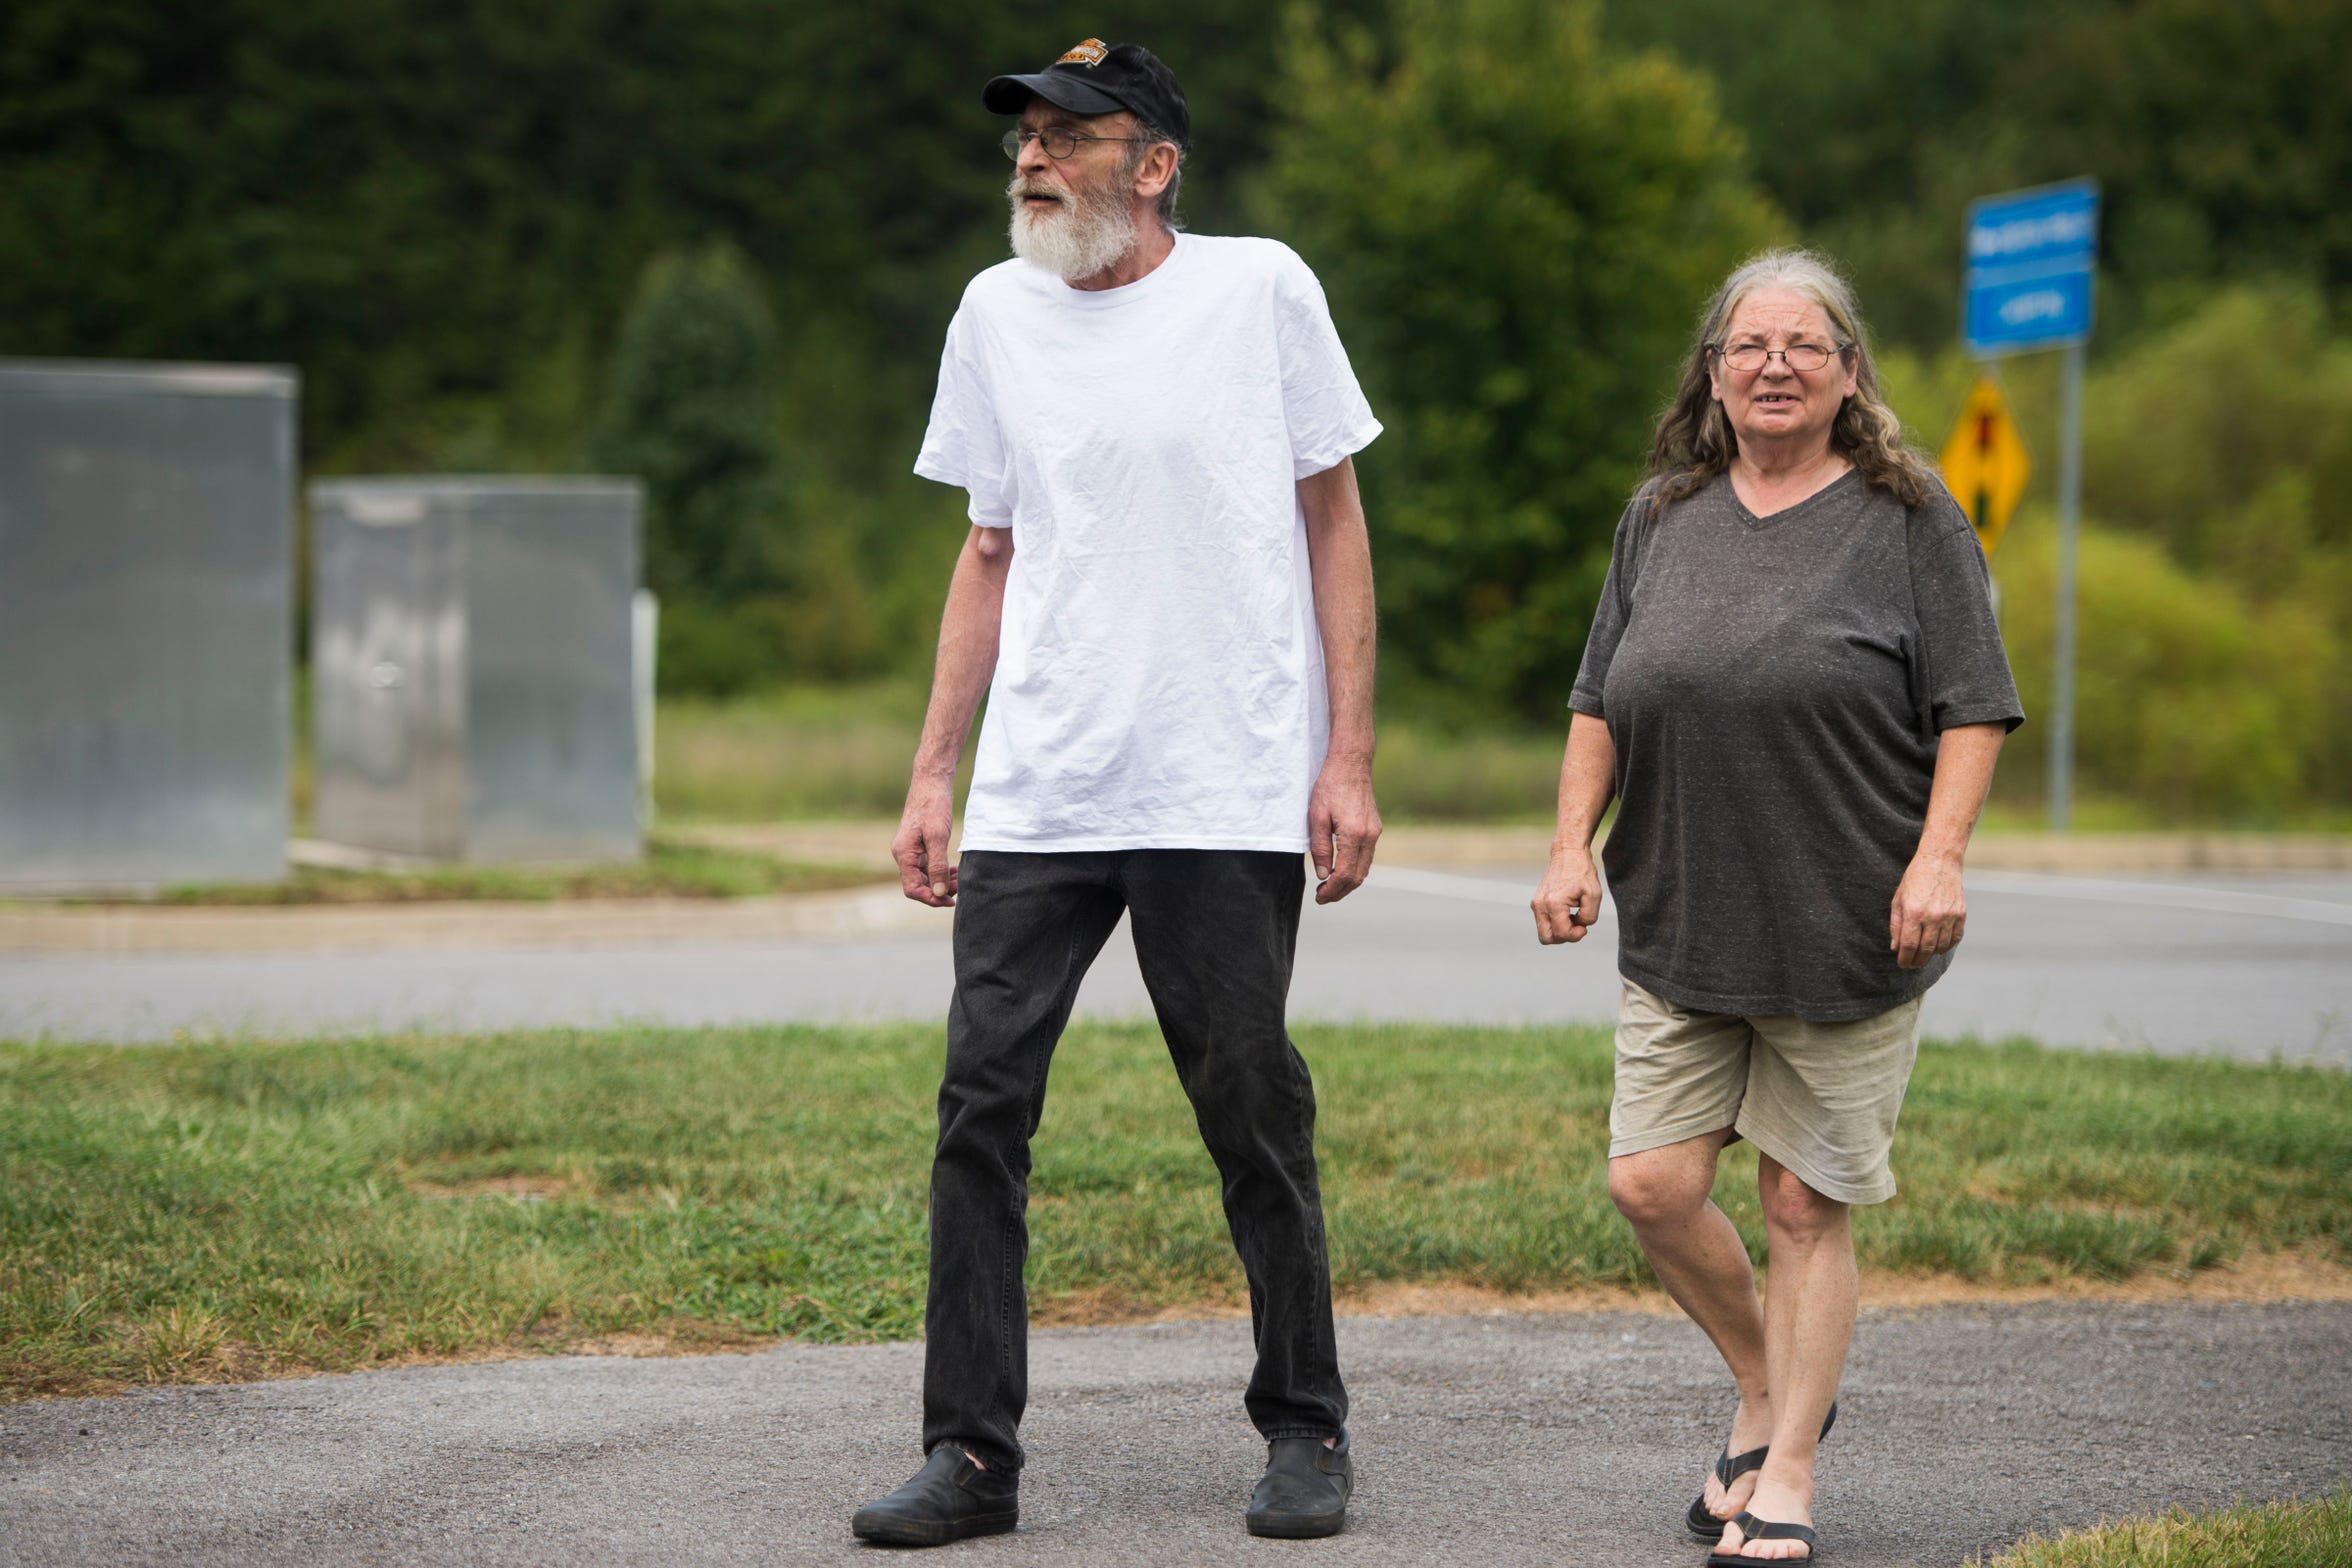 Alan Chrisman walks with his wife, Joyce, near the Sevierville, Tenn., McDonald's where he worked as a maintenance employee before being diagnosed with stage 4 colorectal cancer. Chrisman applied for disability but was initially denied based on a recommendation by a medical contractor hired by the state to review claims.